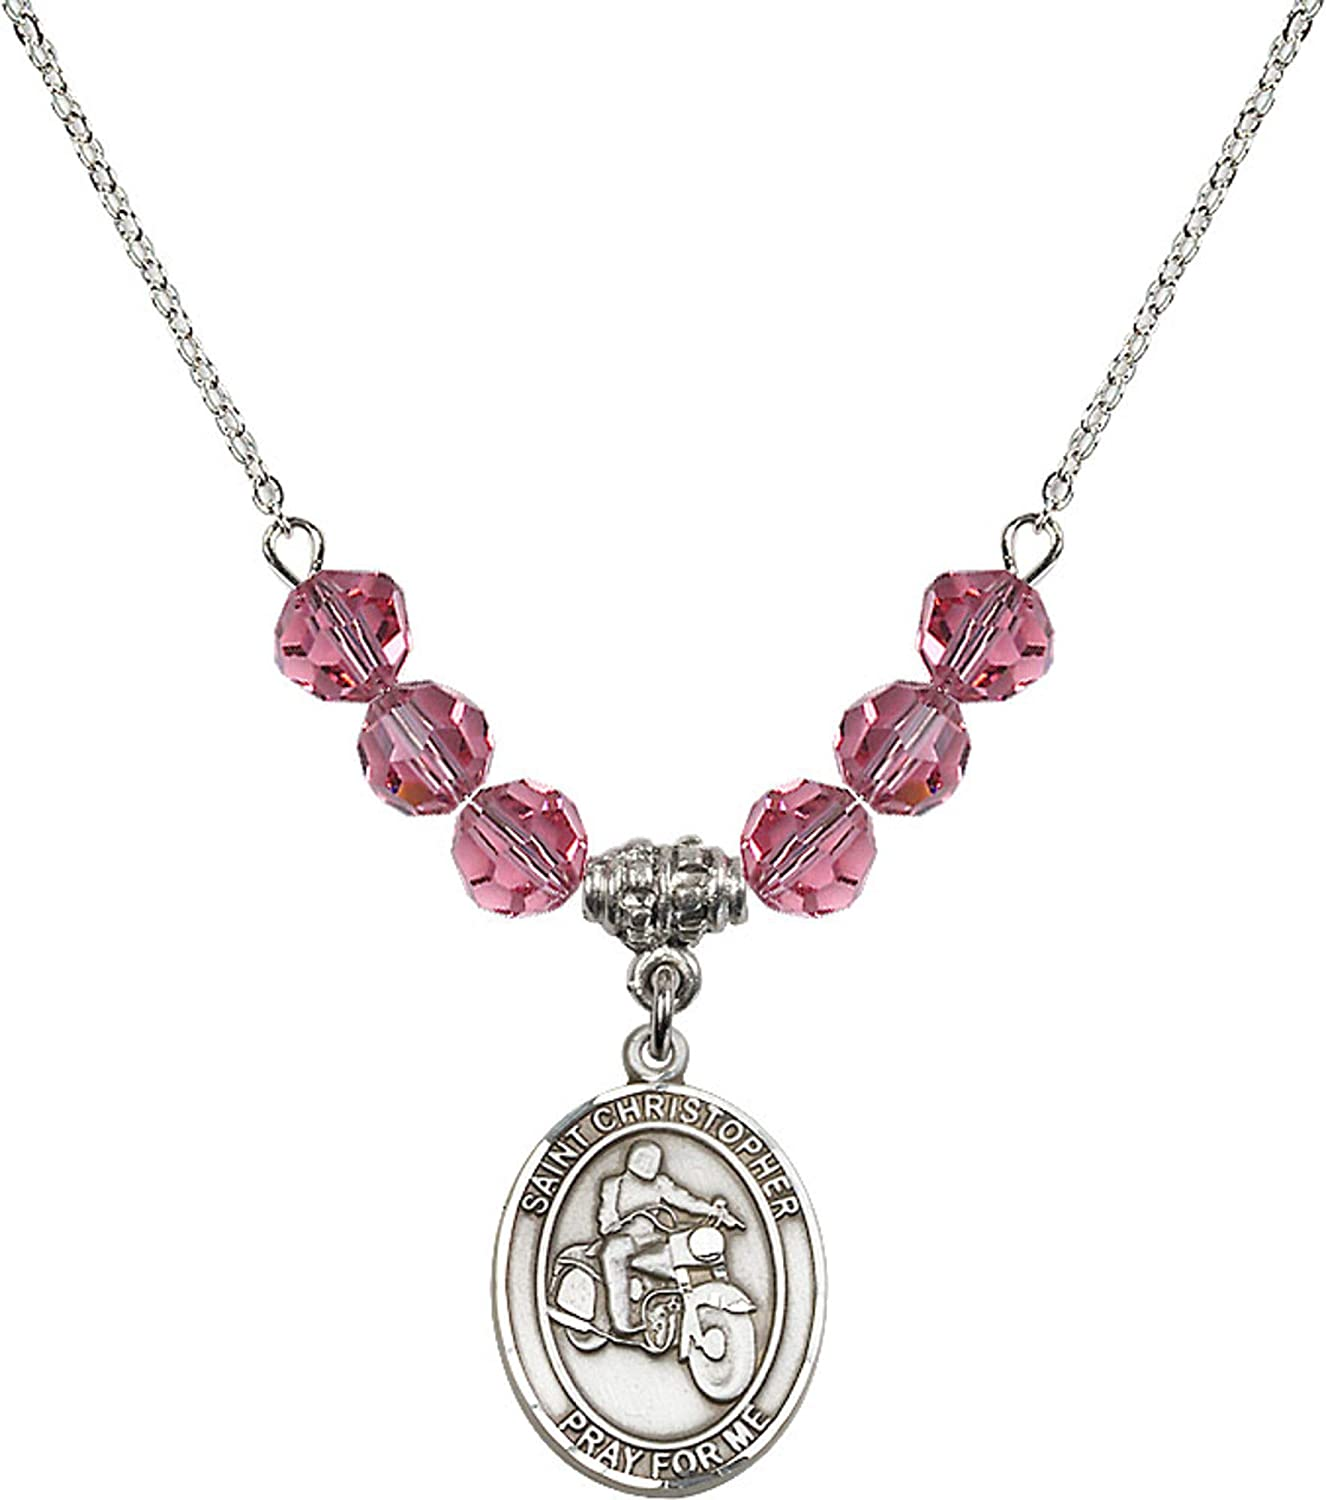 Bonyak Jewelry 18 Inch Rhodium Plated Necklace w// 6mm Rose Pink October Birth Month Stone Beads and Saint Christopher//Motorcycle Charm